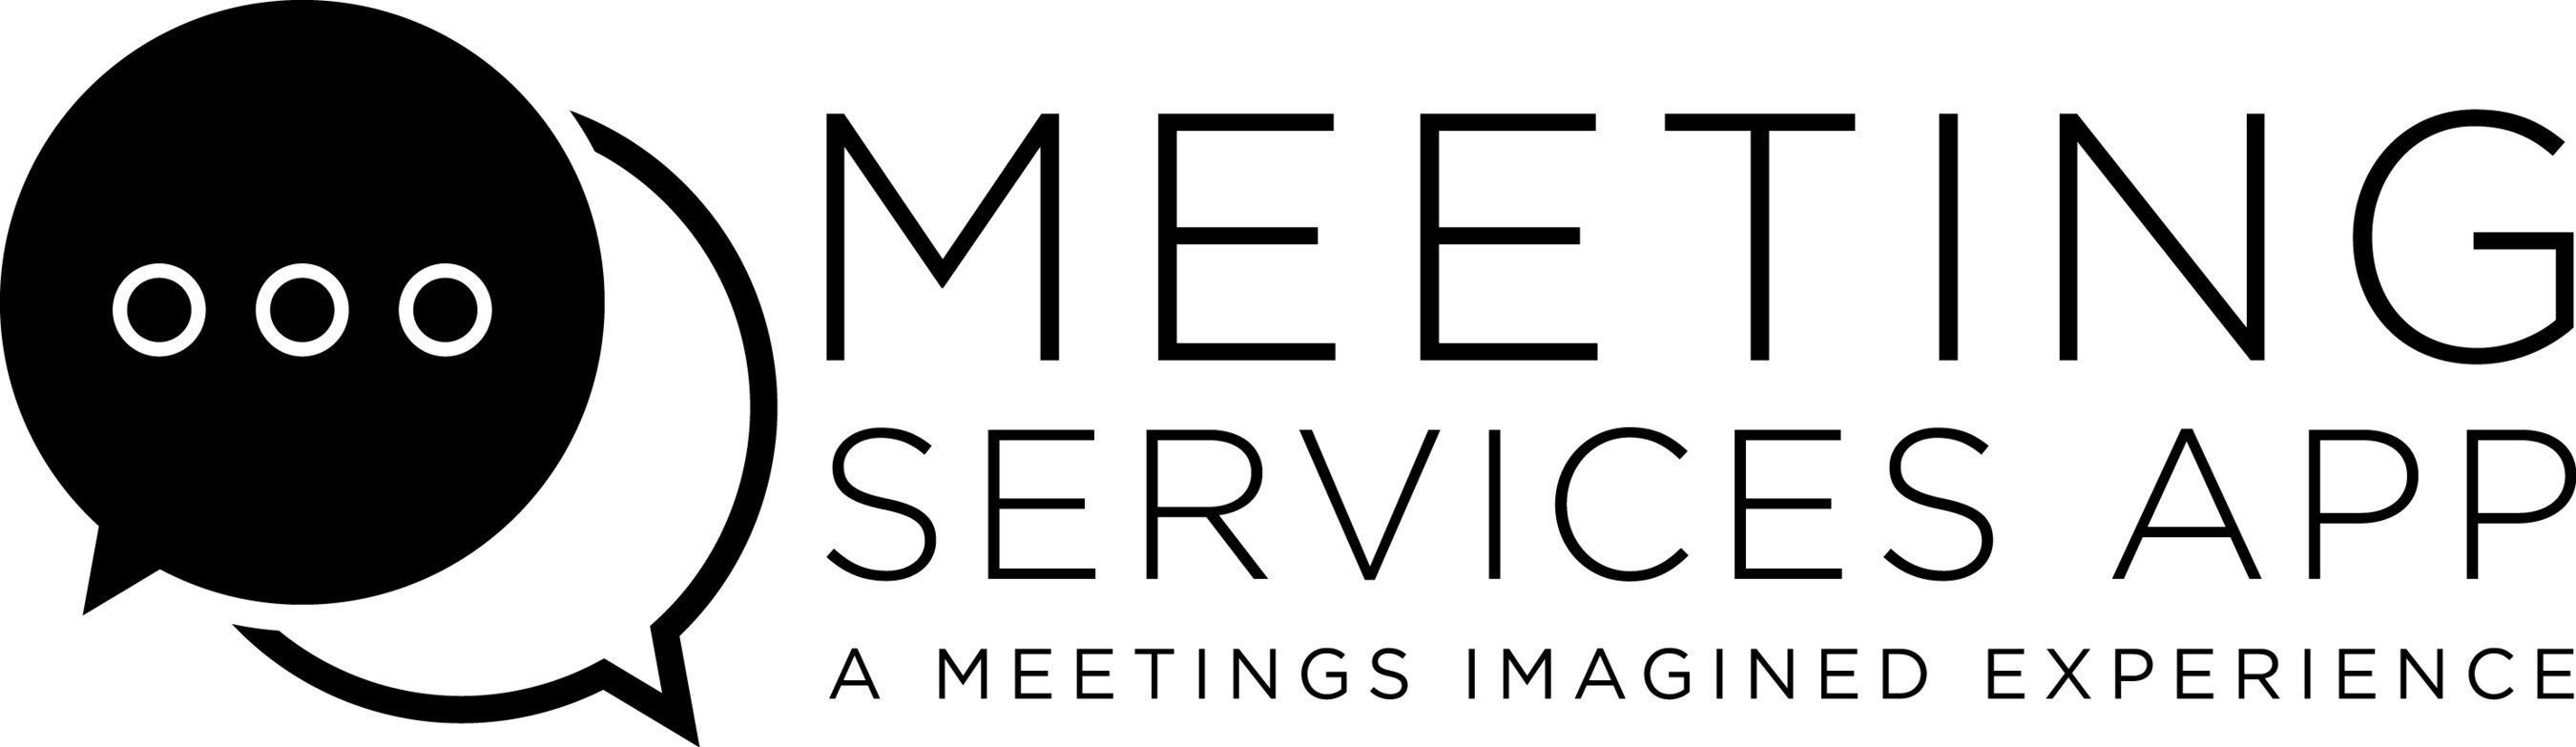 Meeting Services logo